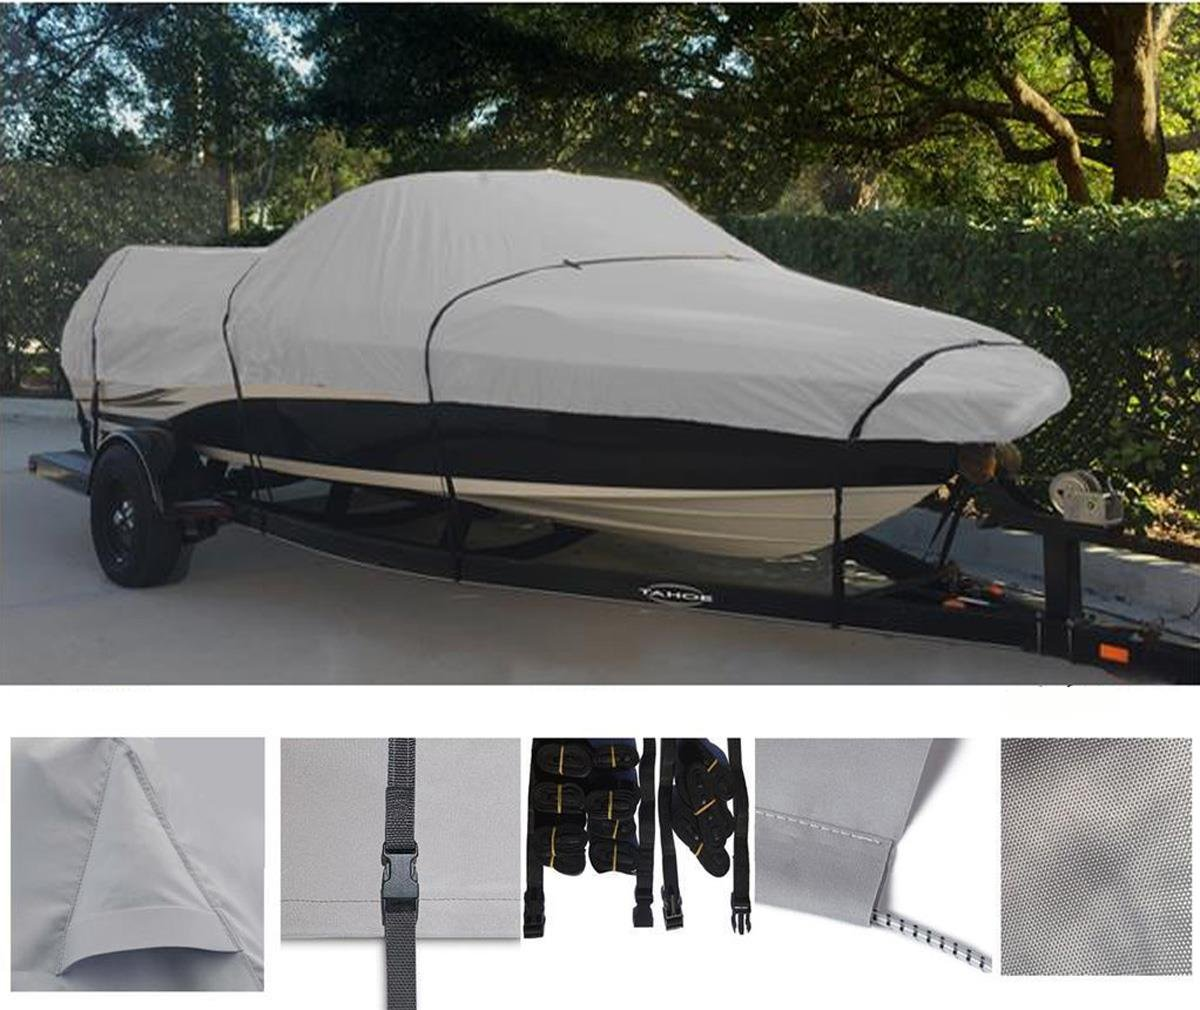 GREY, STORAGE, TRAVEL, MOORING BOAT COVER FOR Sea Ray 210 Bow Rider 1987 - 1997 1998 1999 2000 2001 2002 2003 2004 by SBU